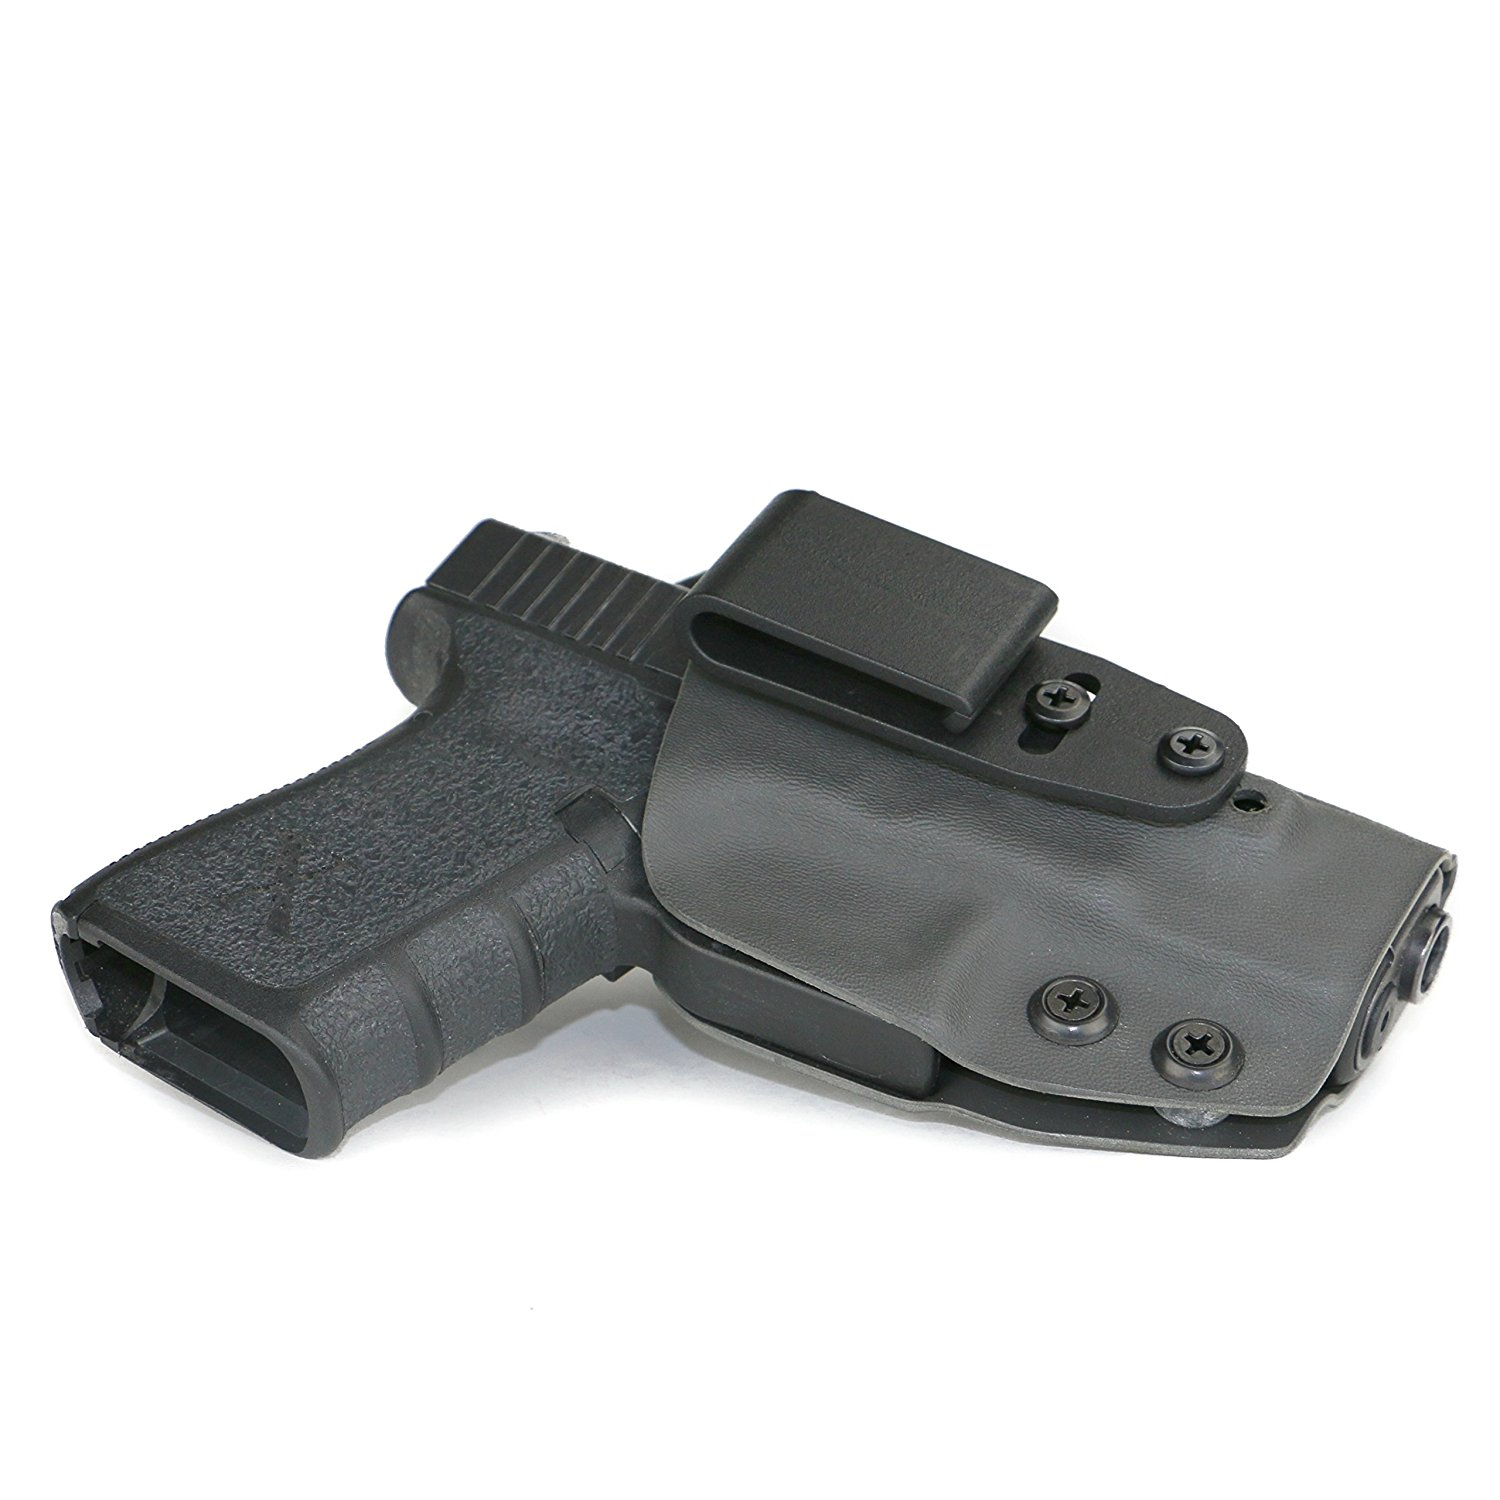 Buy Inside the Waistband IWB Concealed Gun Holster for North